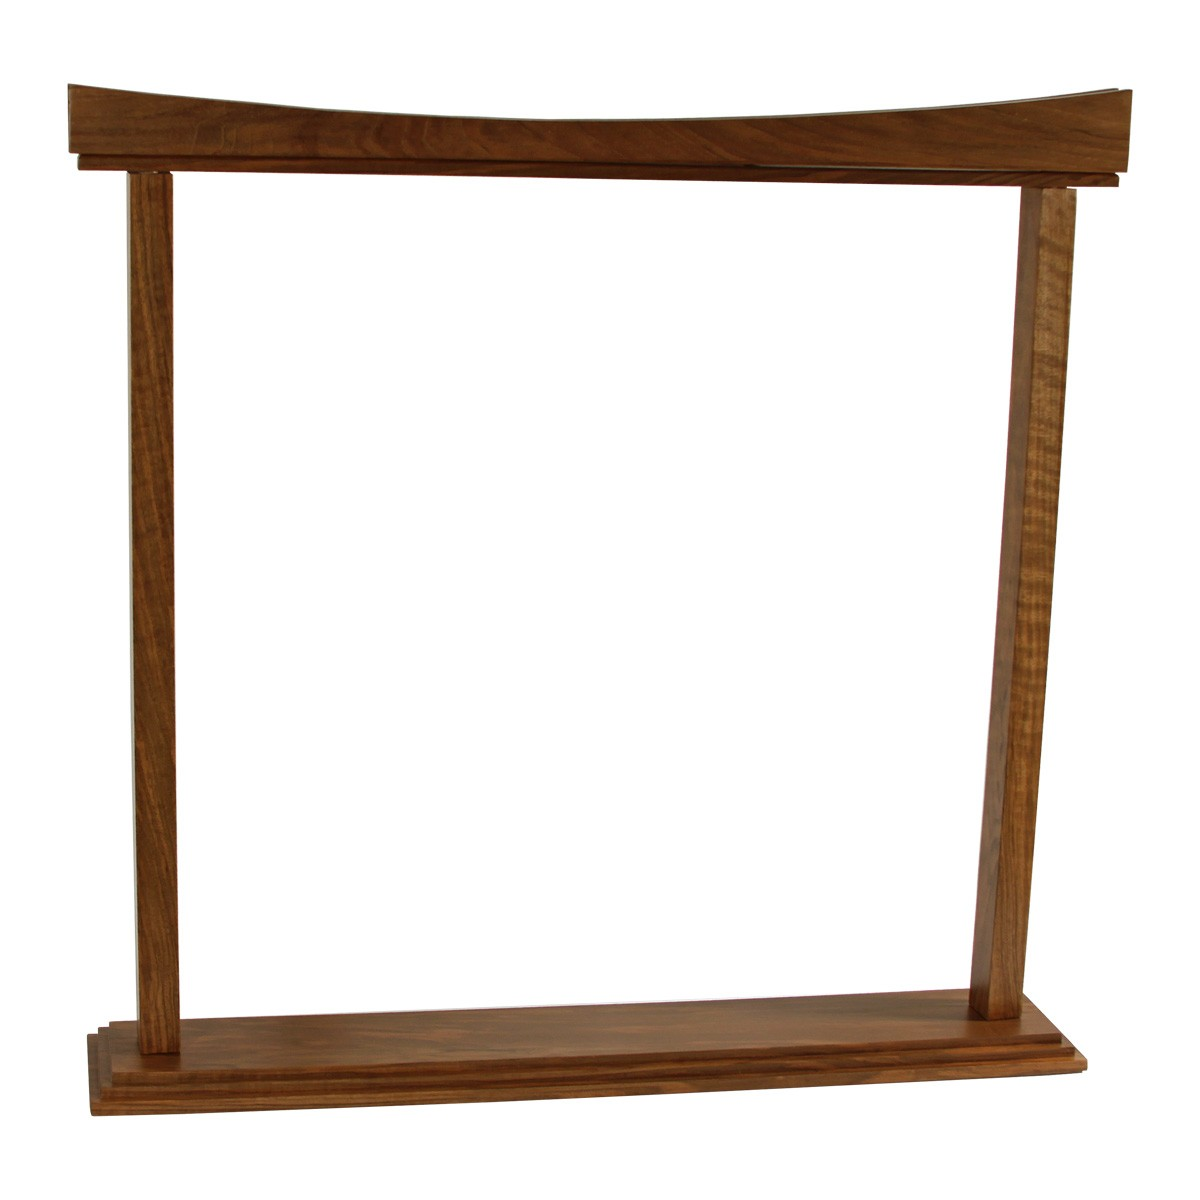 DOBANI Curved Walnut Gong Stand 26-Inch